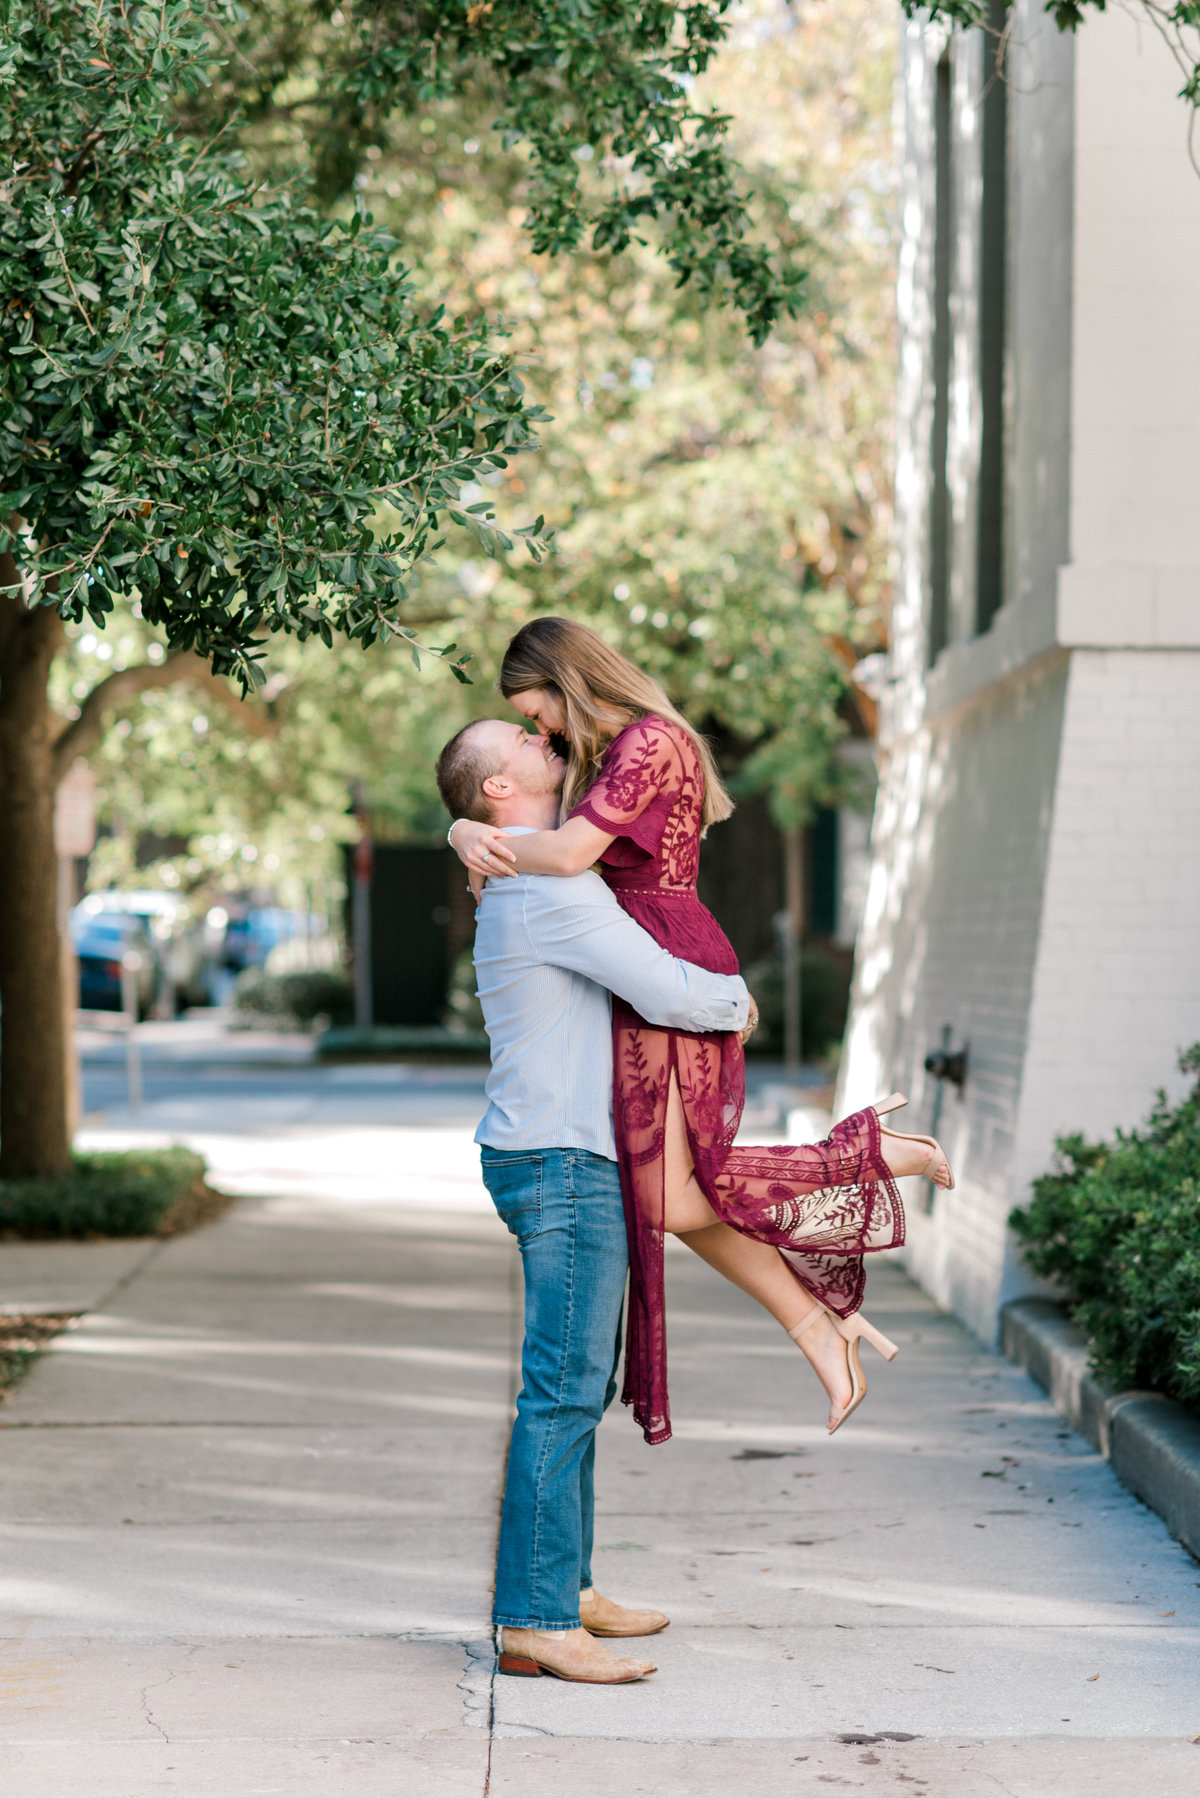 Guy lifts girl during  engagement session